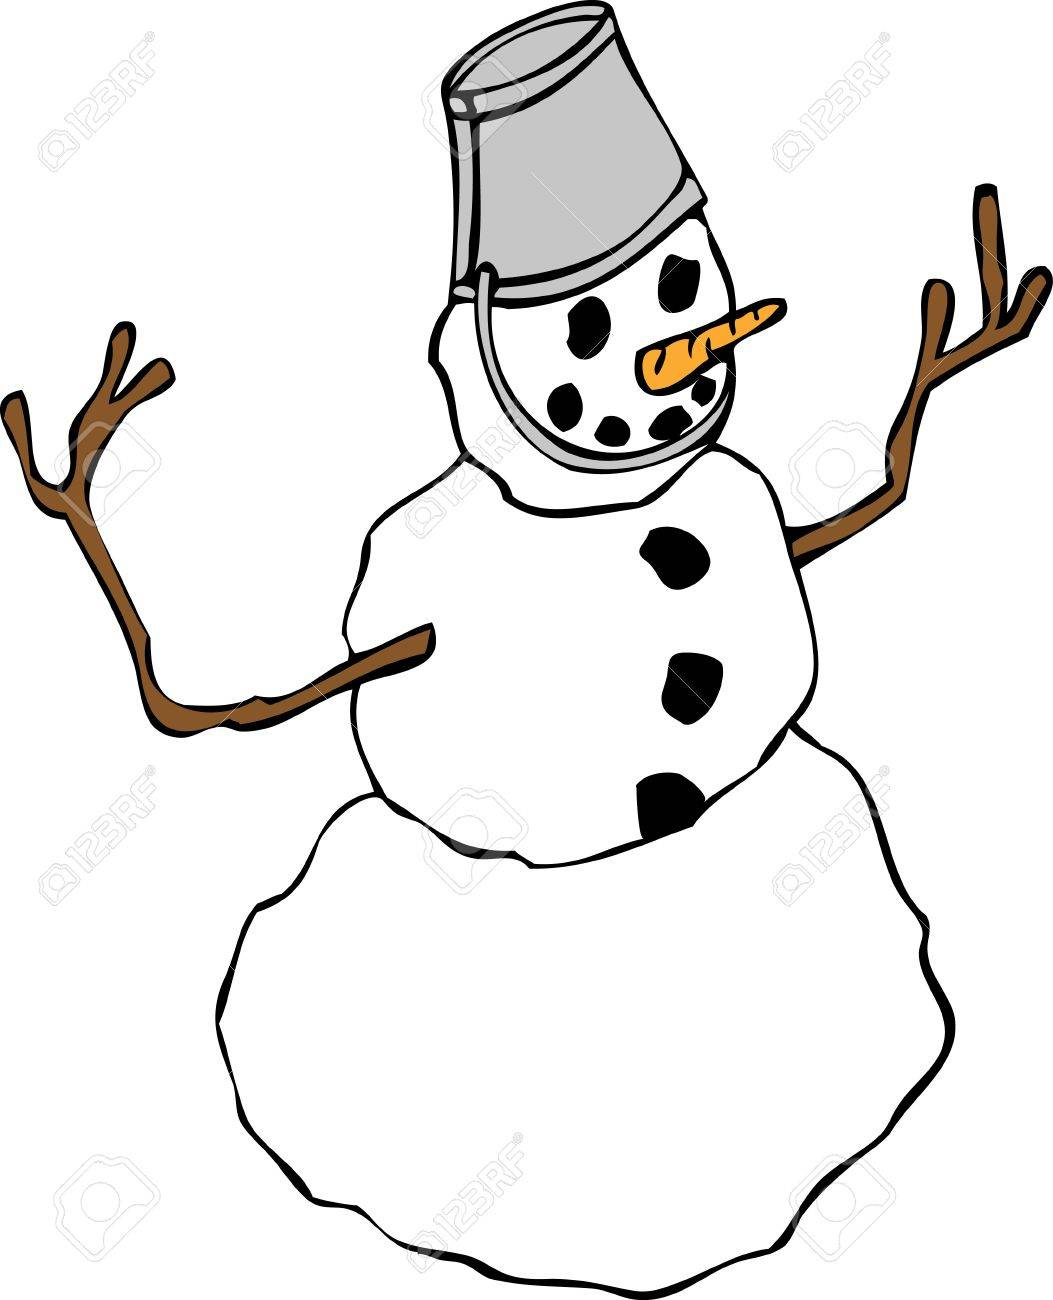 A cheerful snowman with a bucket for a hat. Stock Vector - 16483558